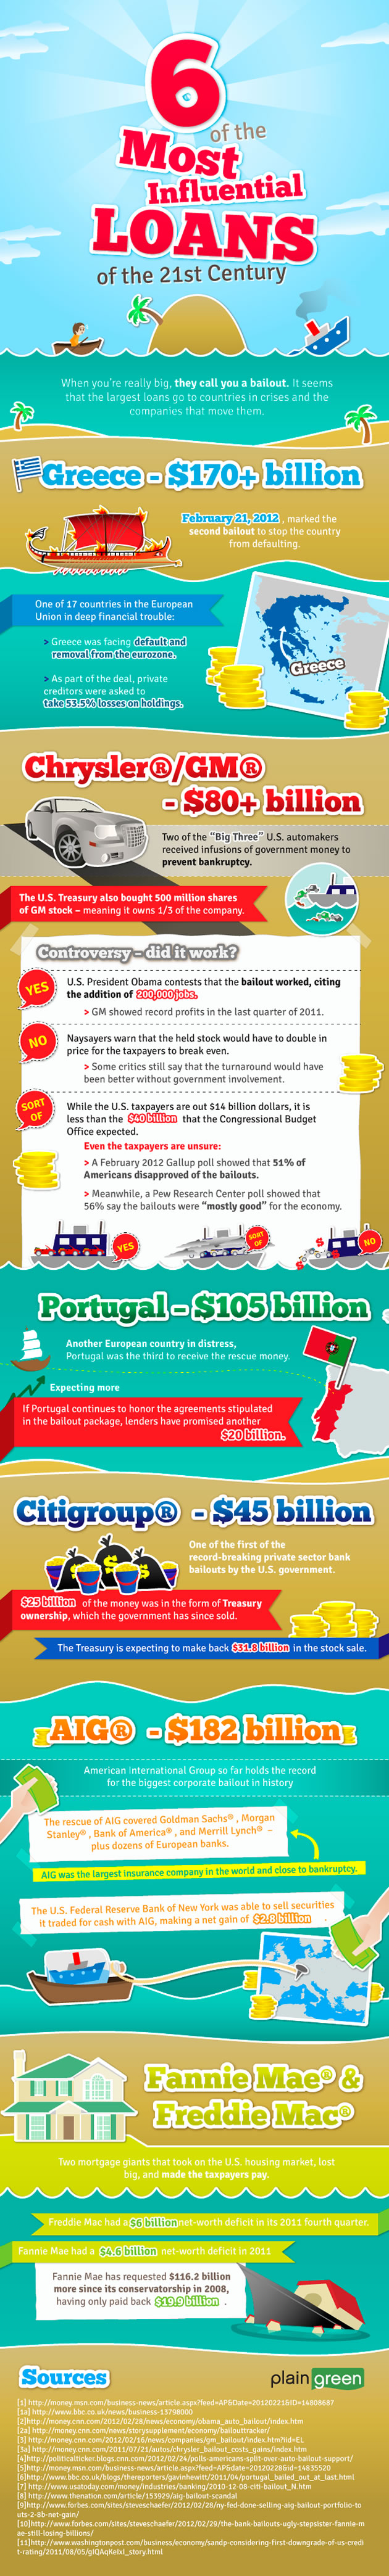 Infographic: Biggest Bailouts of the 21st Century